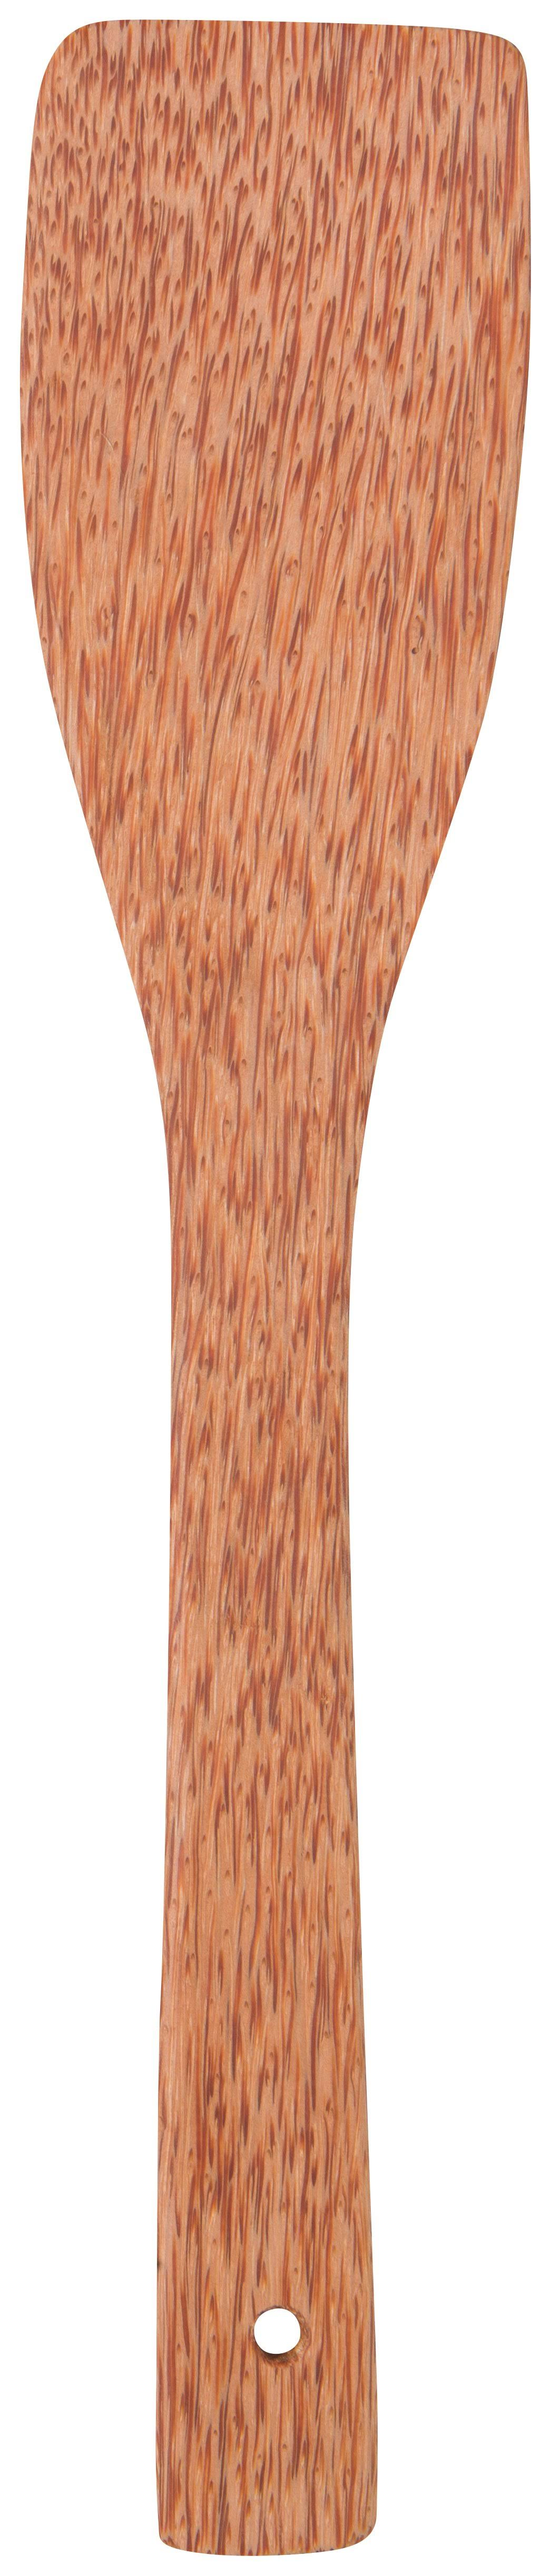 Now Designs Spatula and Turner Brown Coconut Wood Spatula One-Size